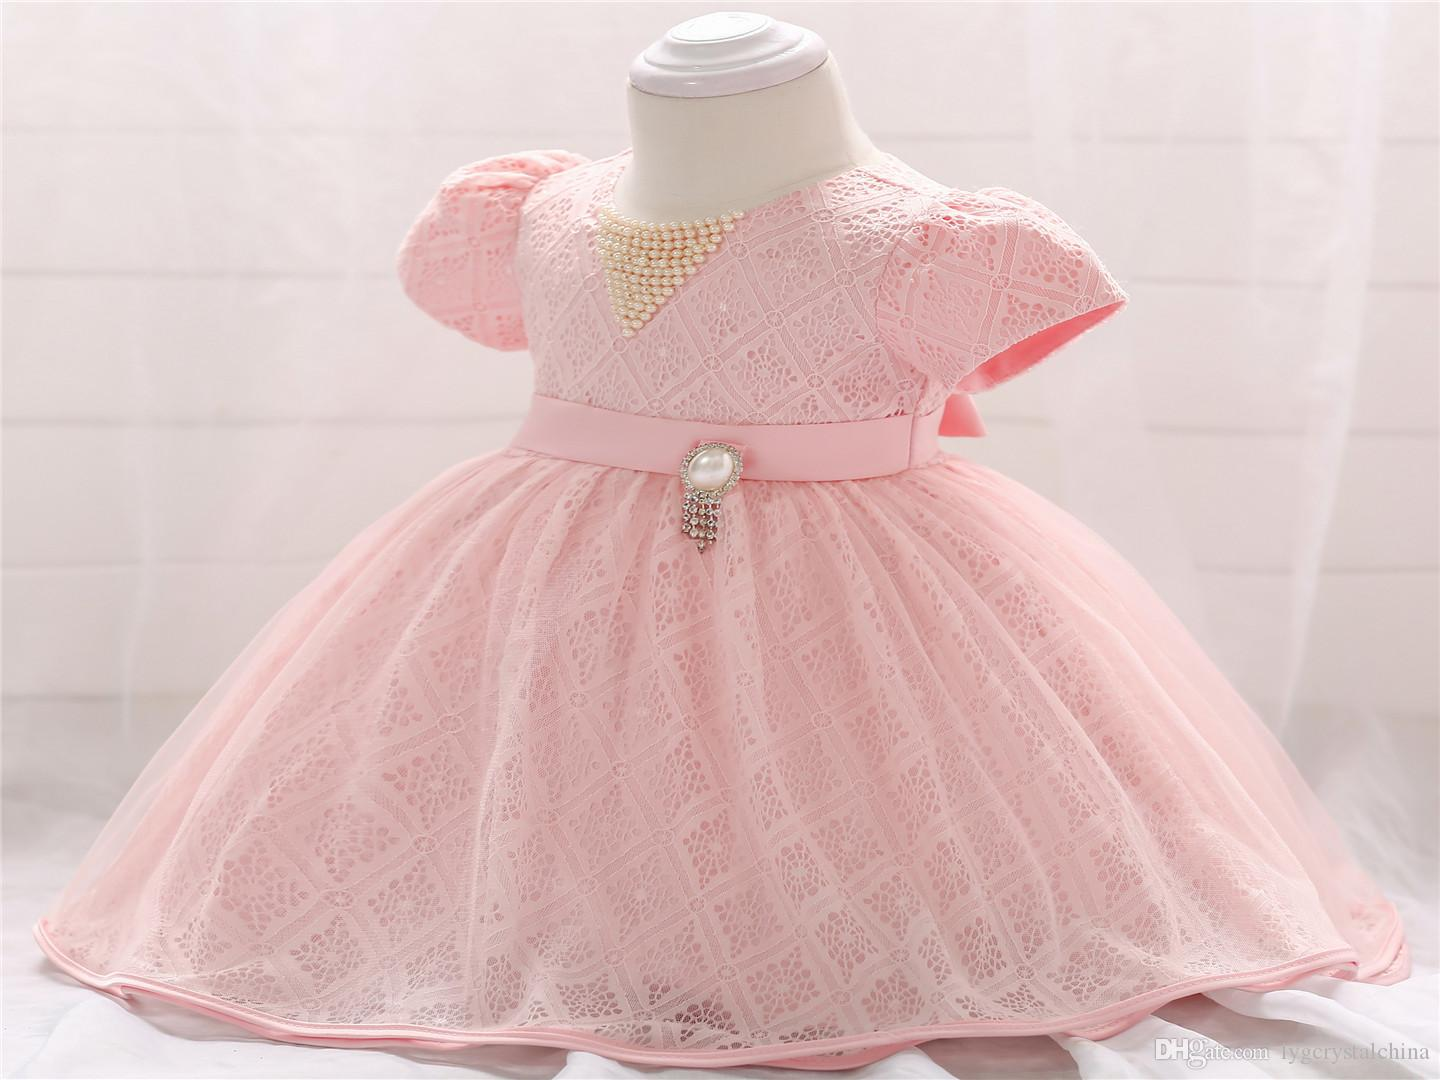 80be8466f 2018 New Collection Baby Short Sleeves Christening Gown Lace Beaded  Workmanship High Quality Princess Style Pink First Communion Dresses Online  with ...